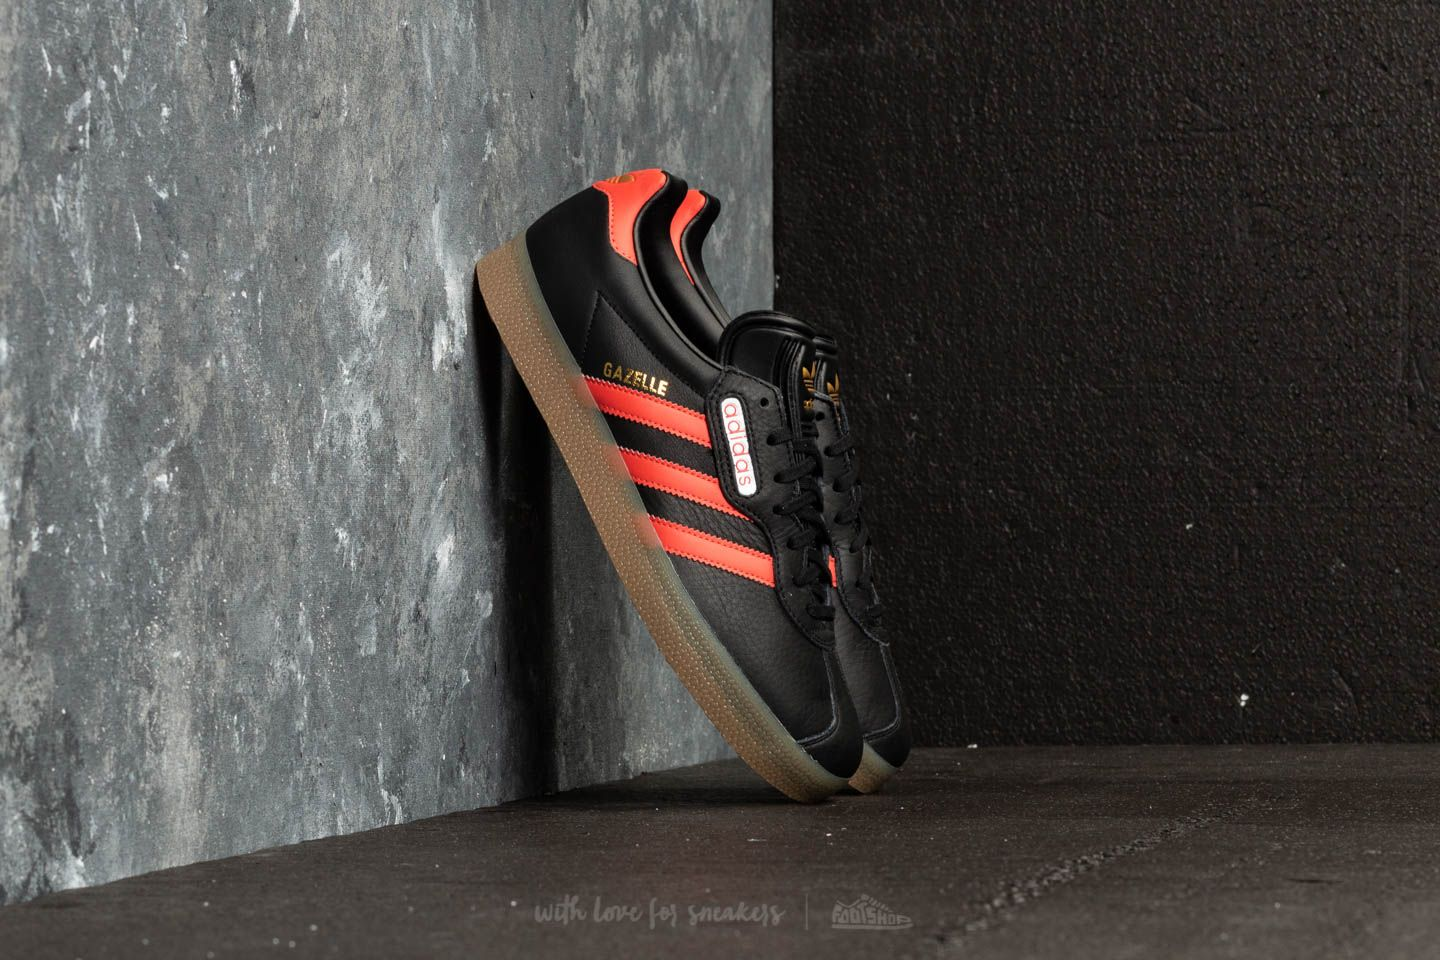 buy online 88cfa 8c556 adidas Gazelle Super Core Black Trace Scarlet Ftw White at a great price  63